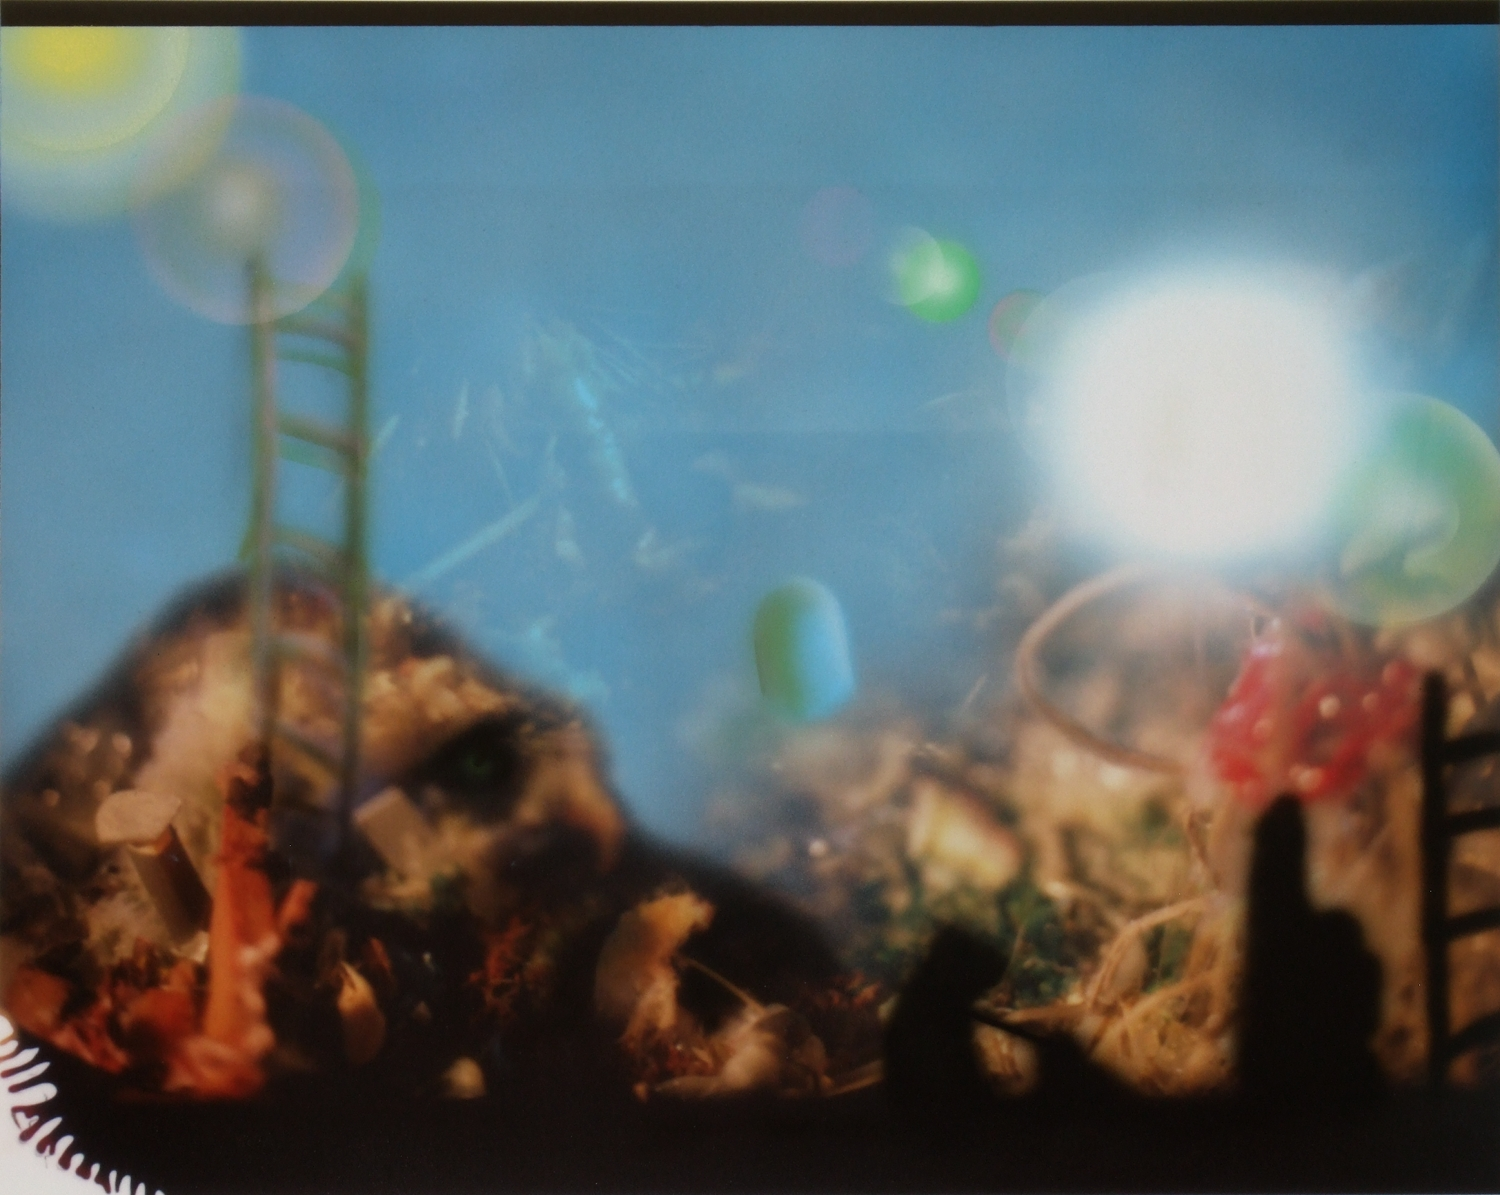 Horizons Living Memory Blotted Out   India ink on Chromira print  16x20 inches  2011